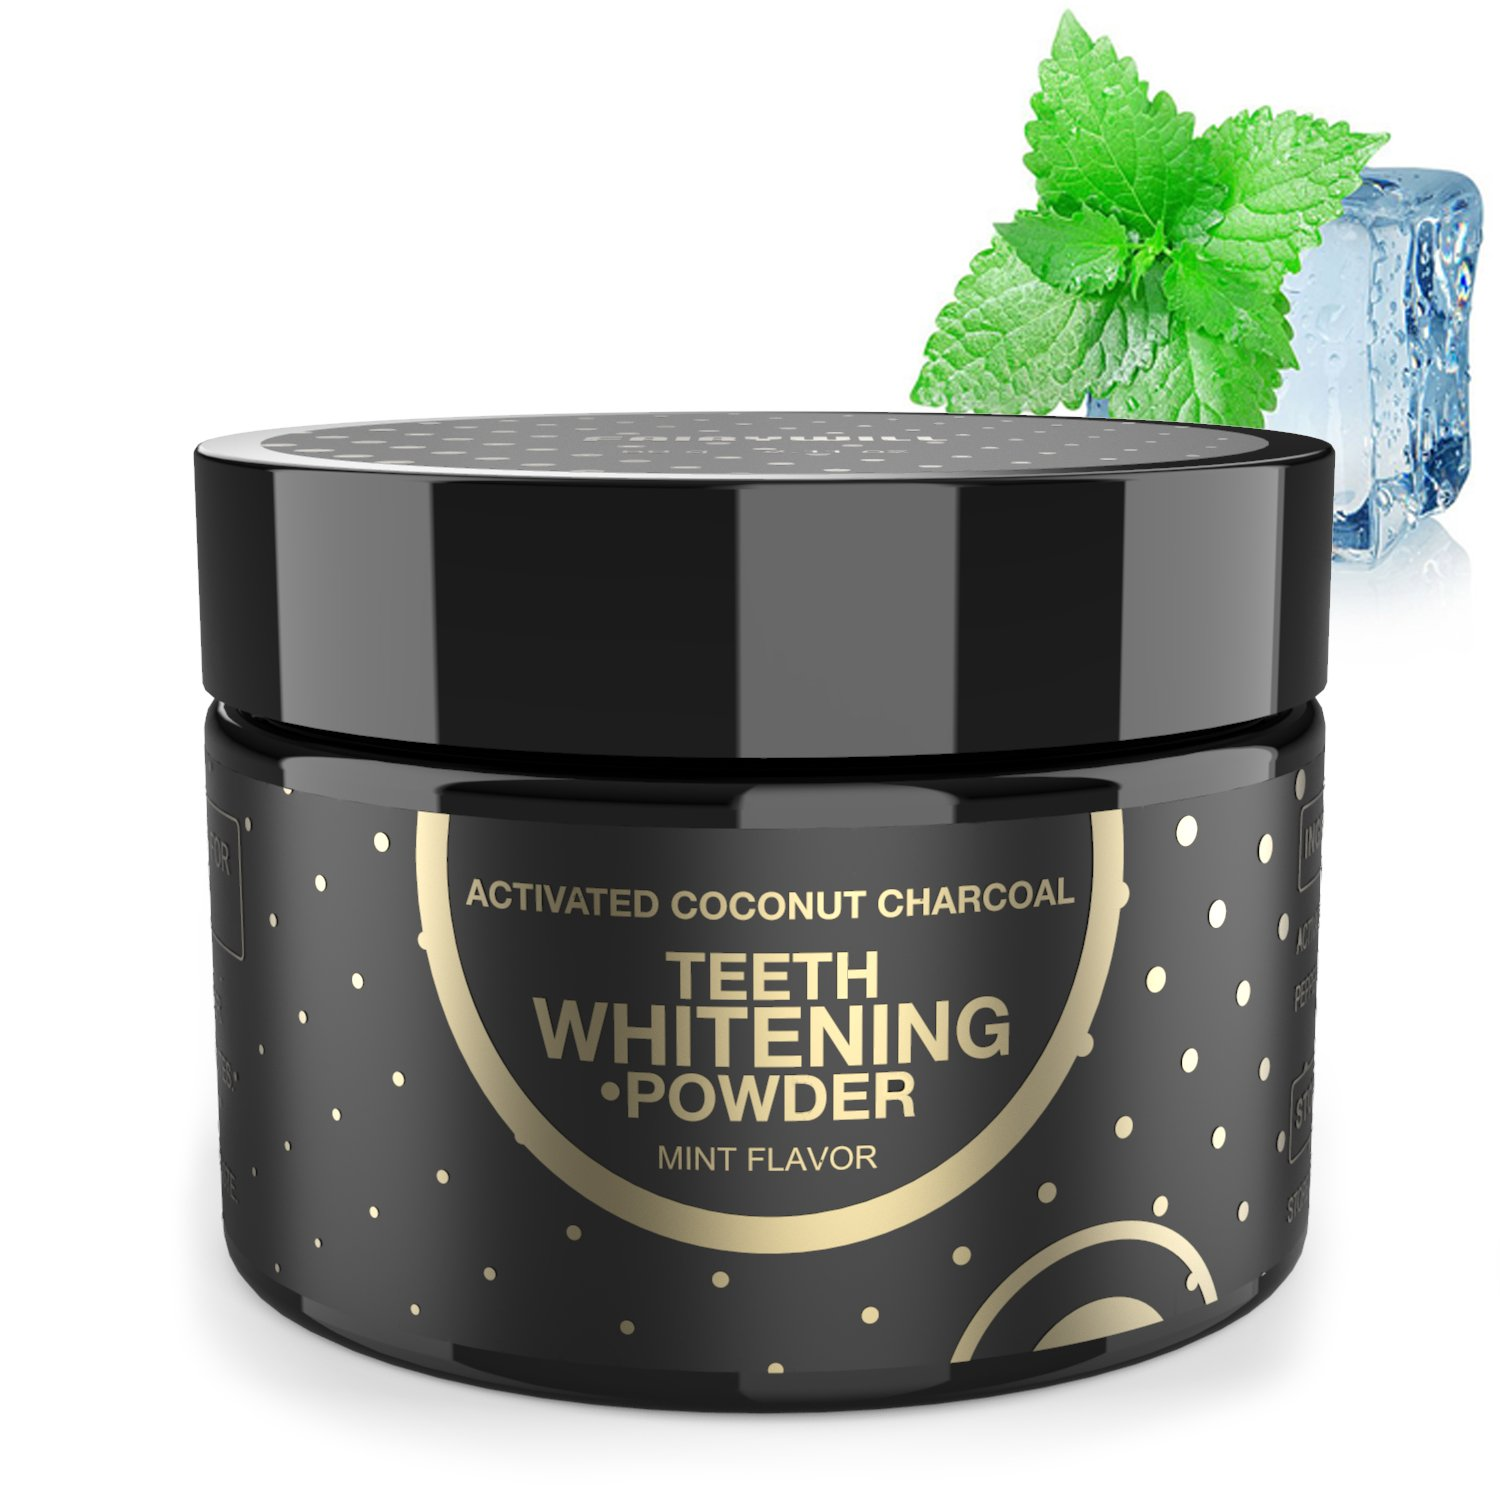 Charcoal Teeth Whitening Activated Charcoal Powder, Proven Safe for Enamel Peppermint Natural Coconut Charcoal Powder 2.11 oz Whitening Teeth Easy by Fairywill